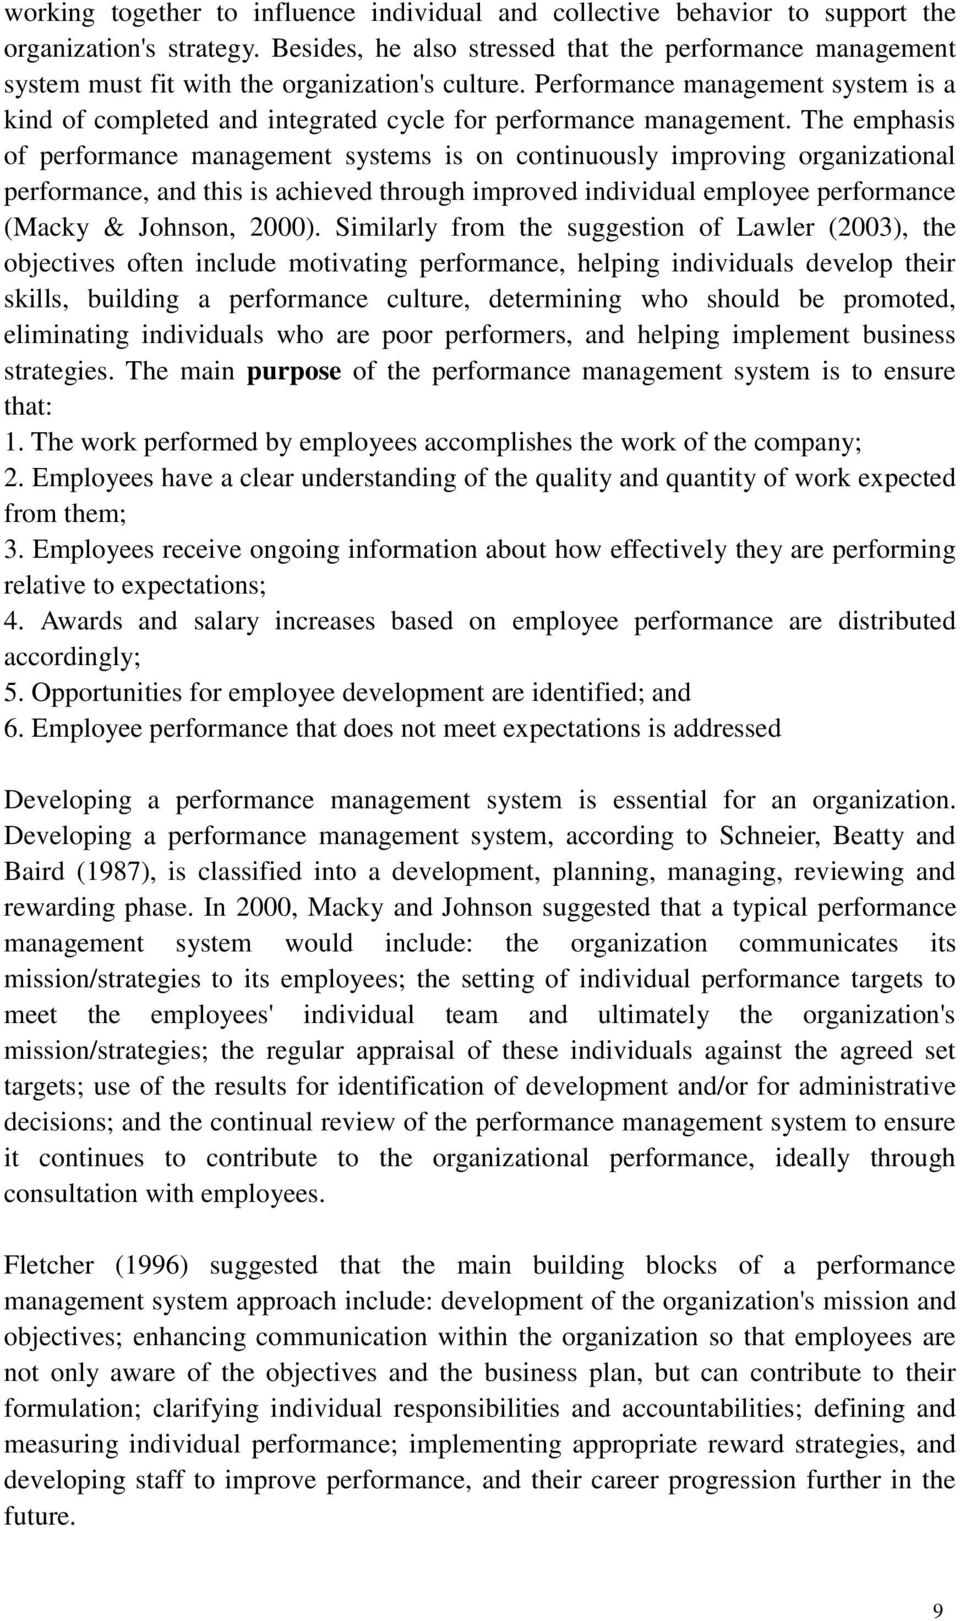 Performance management system is a kind of completed and integrated cycle for performance management.